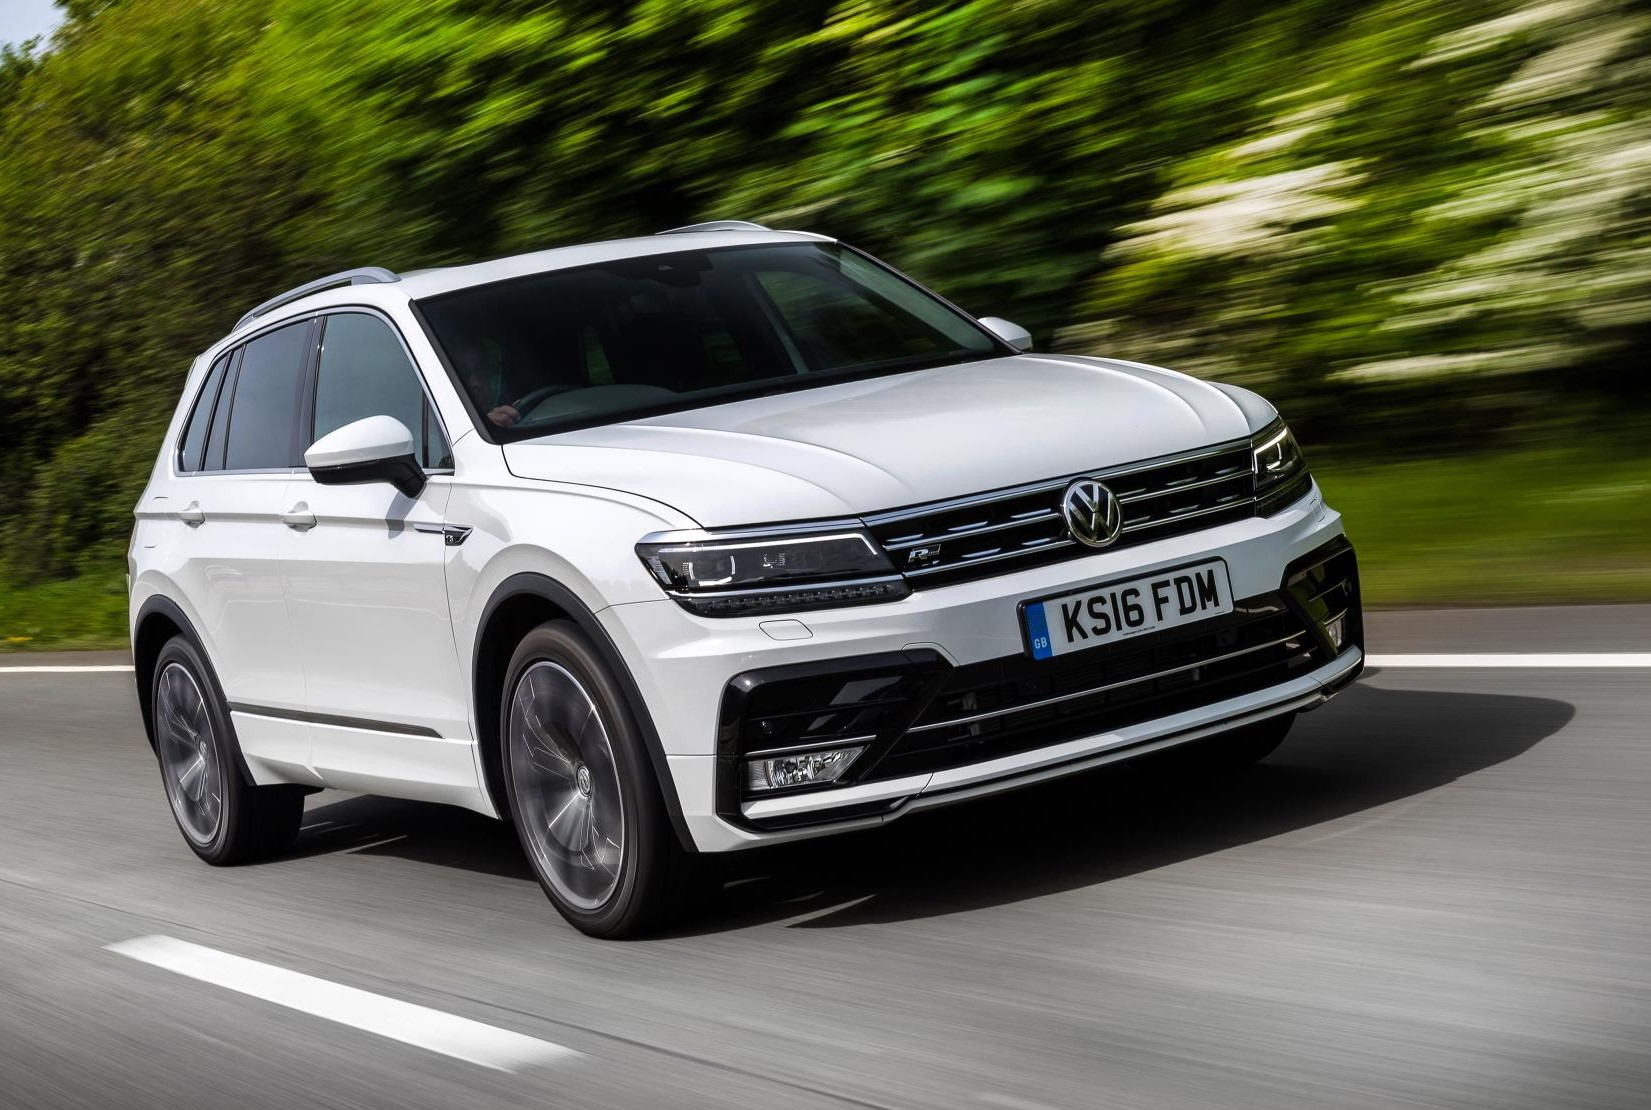 Lease Vw Tiguan New Vw Tiguan Model Is The Most Potent Ever